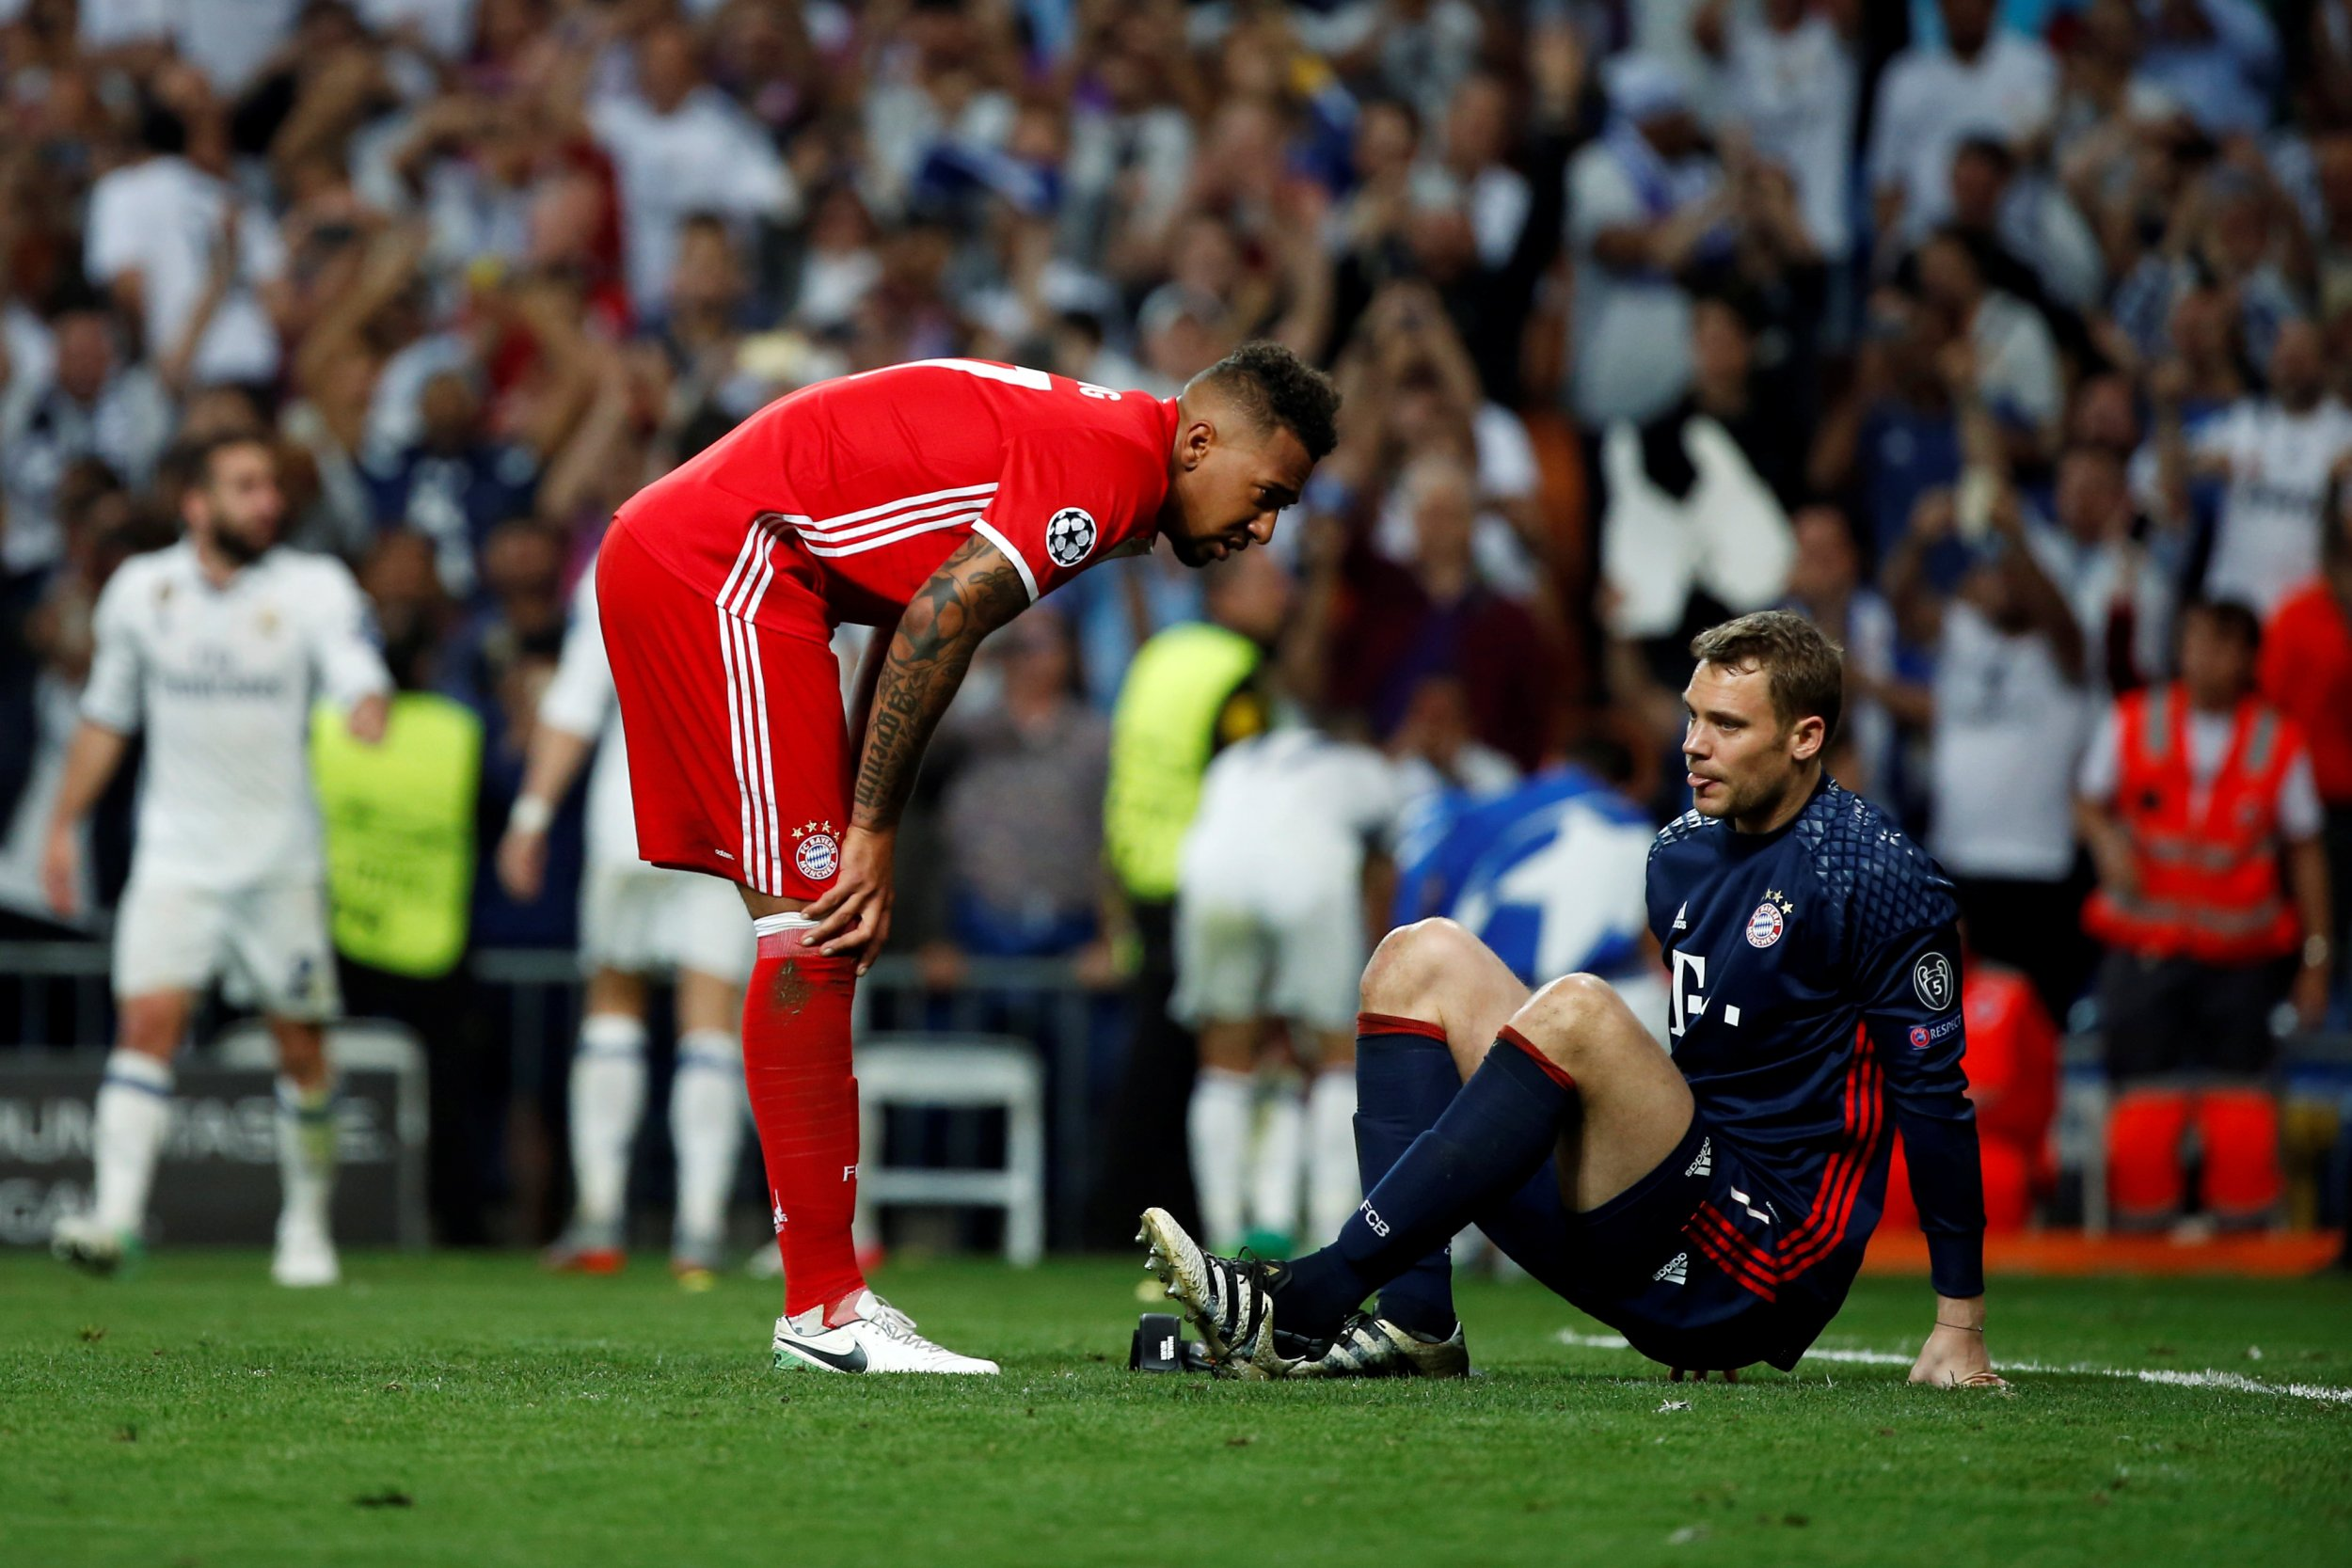 Bayern Munich's Jerome Boateng with goalkeeper Manuel Neuer at Santiago Bernabeu stadium, Madrid, April 18.